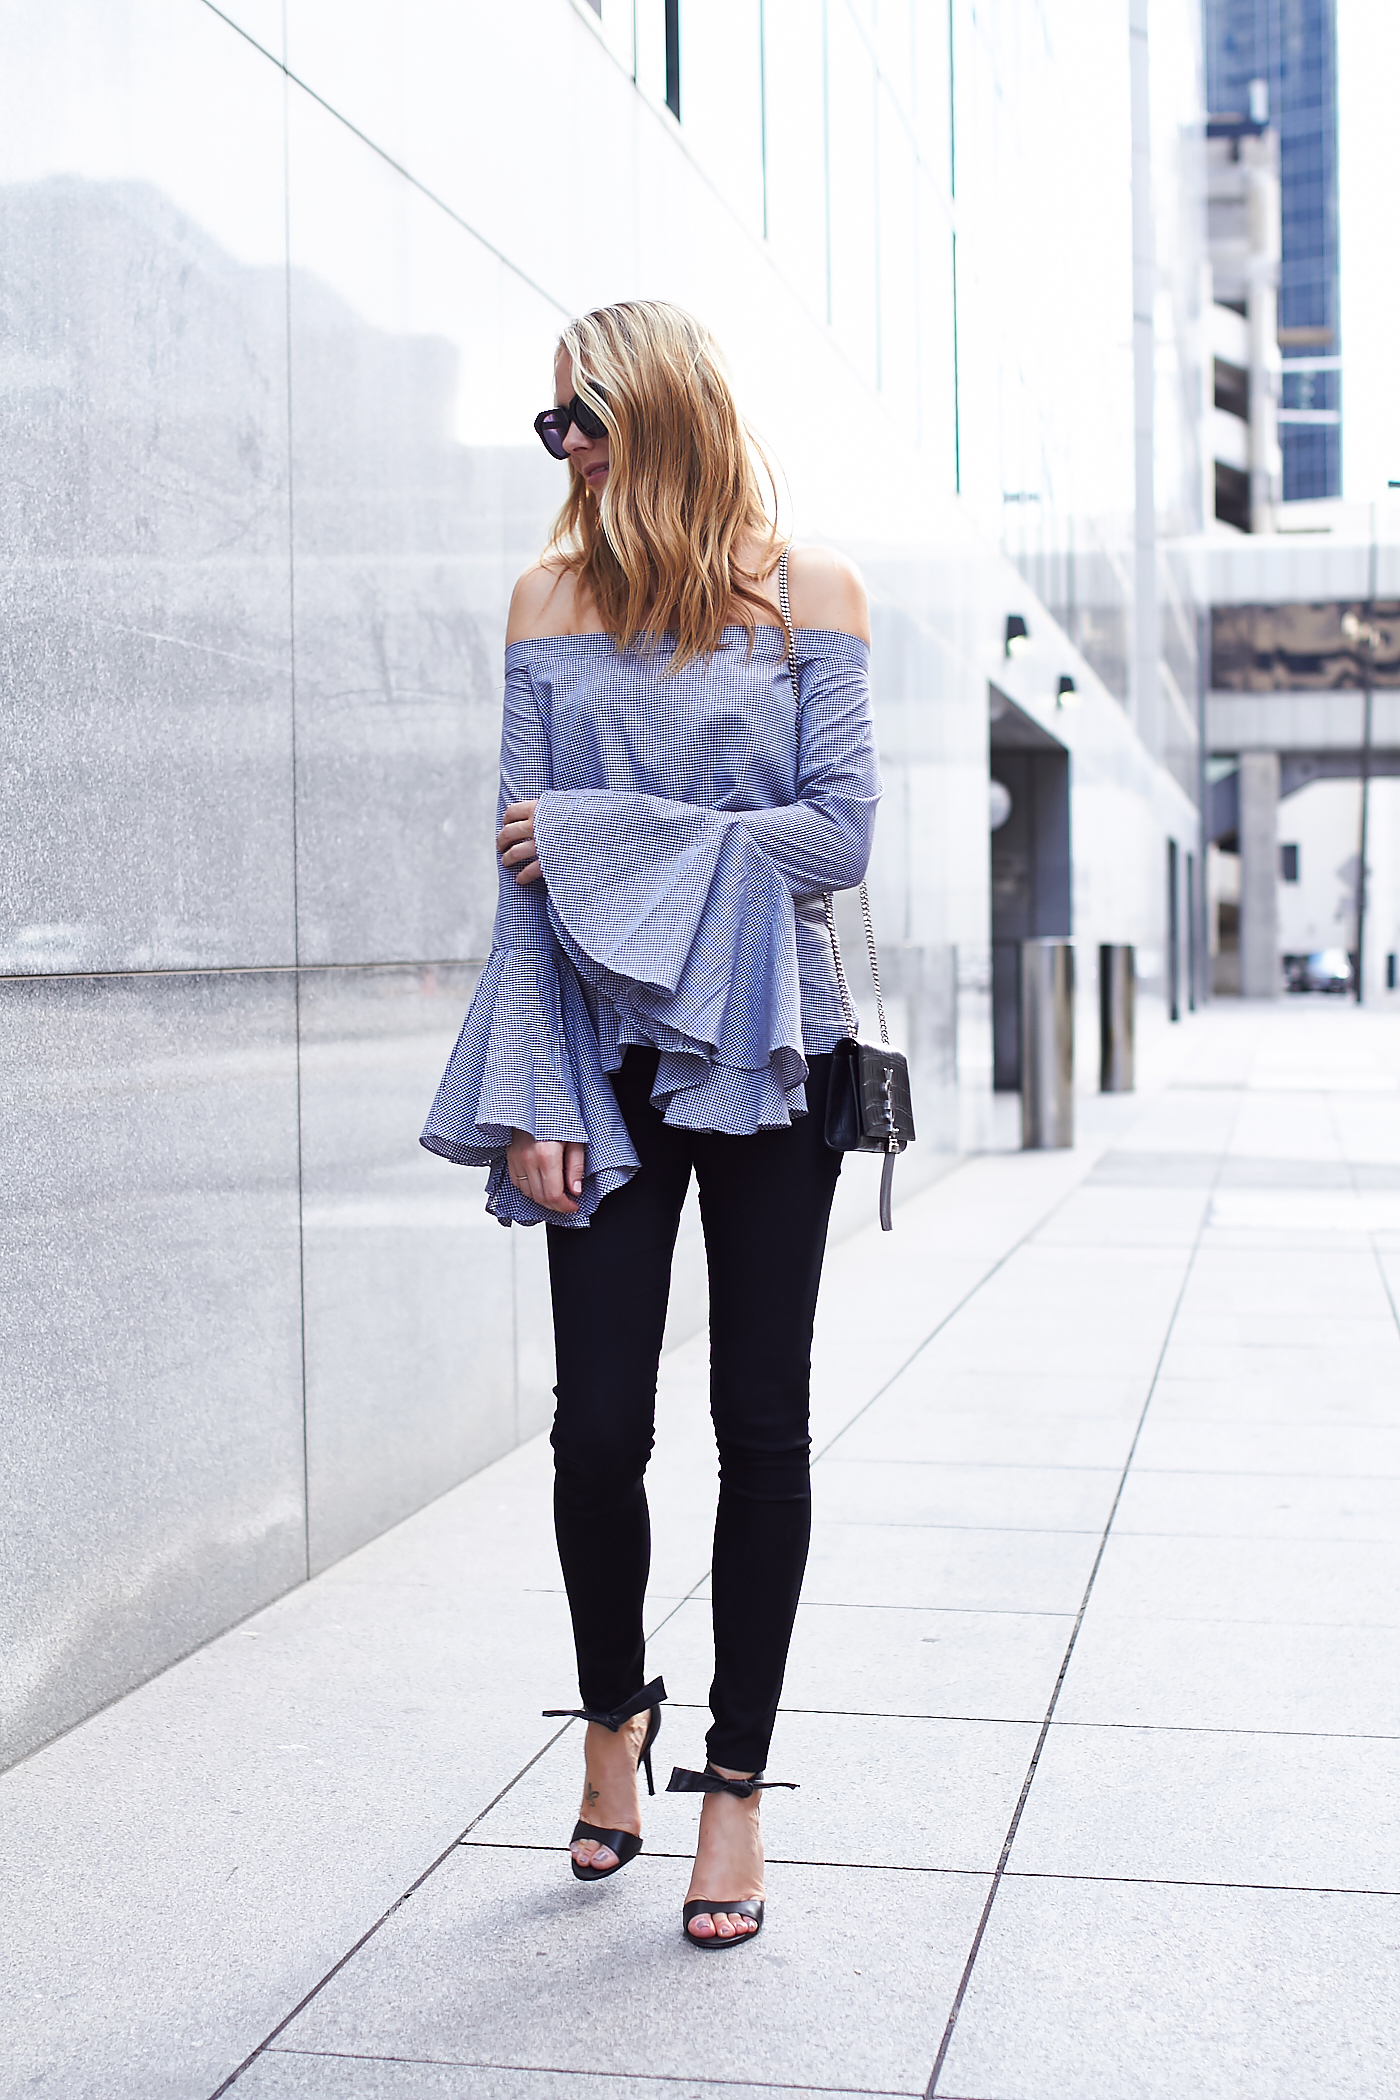 fashion-jackson-chicwish-bell-sleeve-off-the-shoulder-top-black-skinny-jeans-black-bow-heels